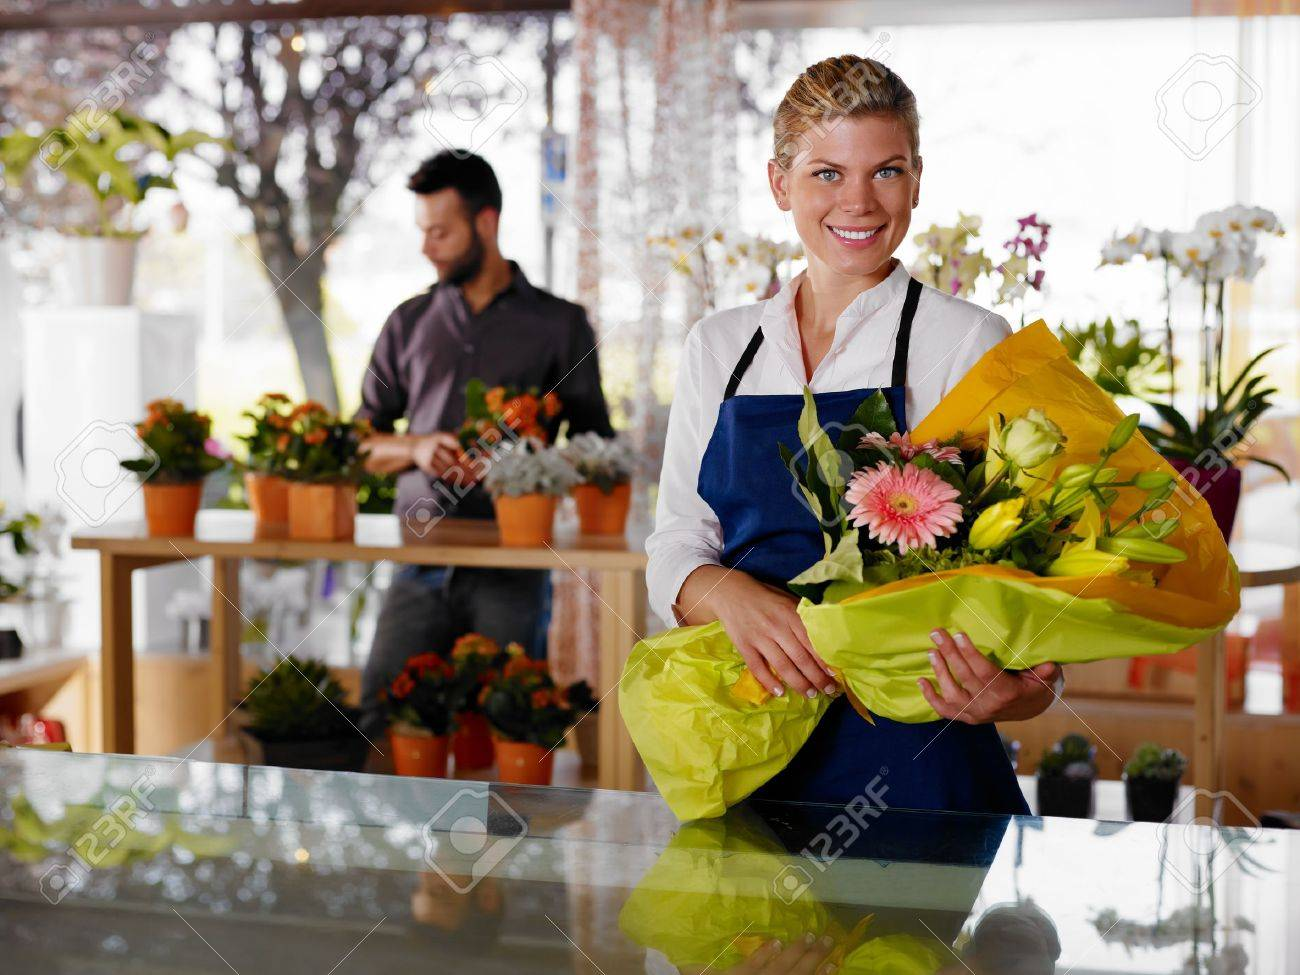 female s assistant working as florist and holding bouquet female s assistant working as florist and holding bouquet customer in background horizontal shape